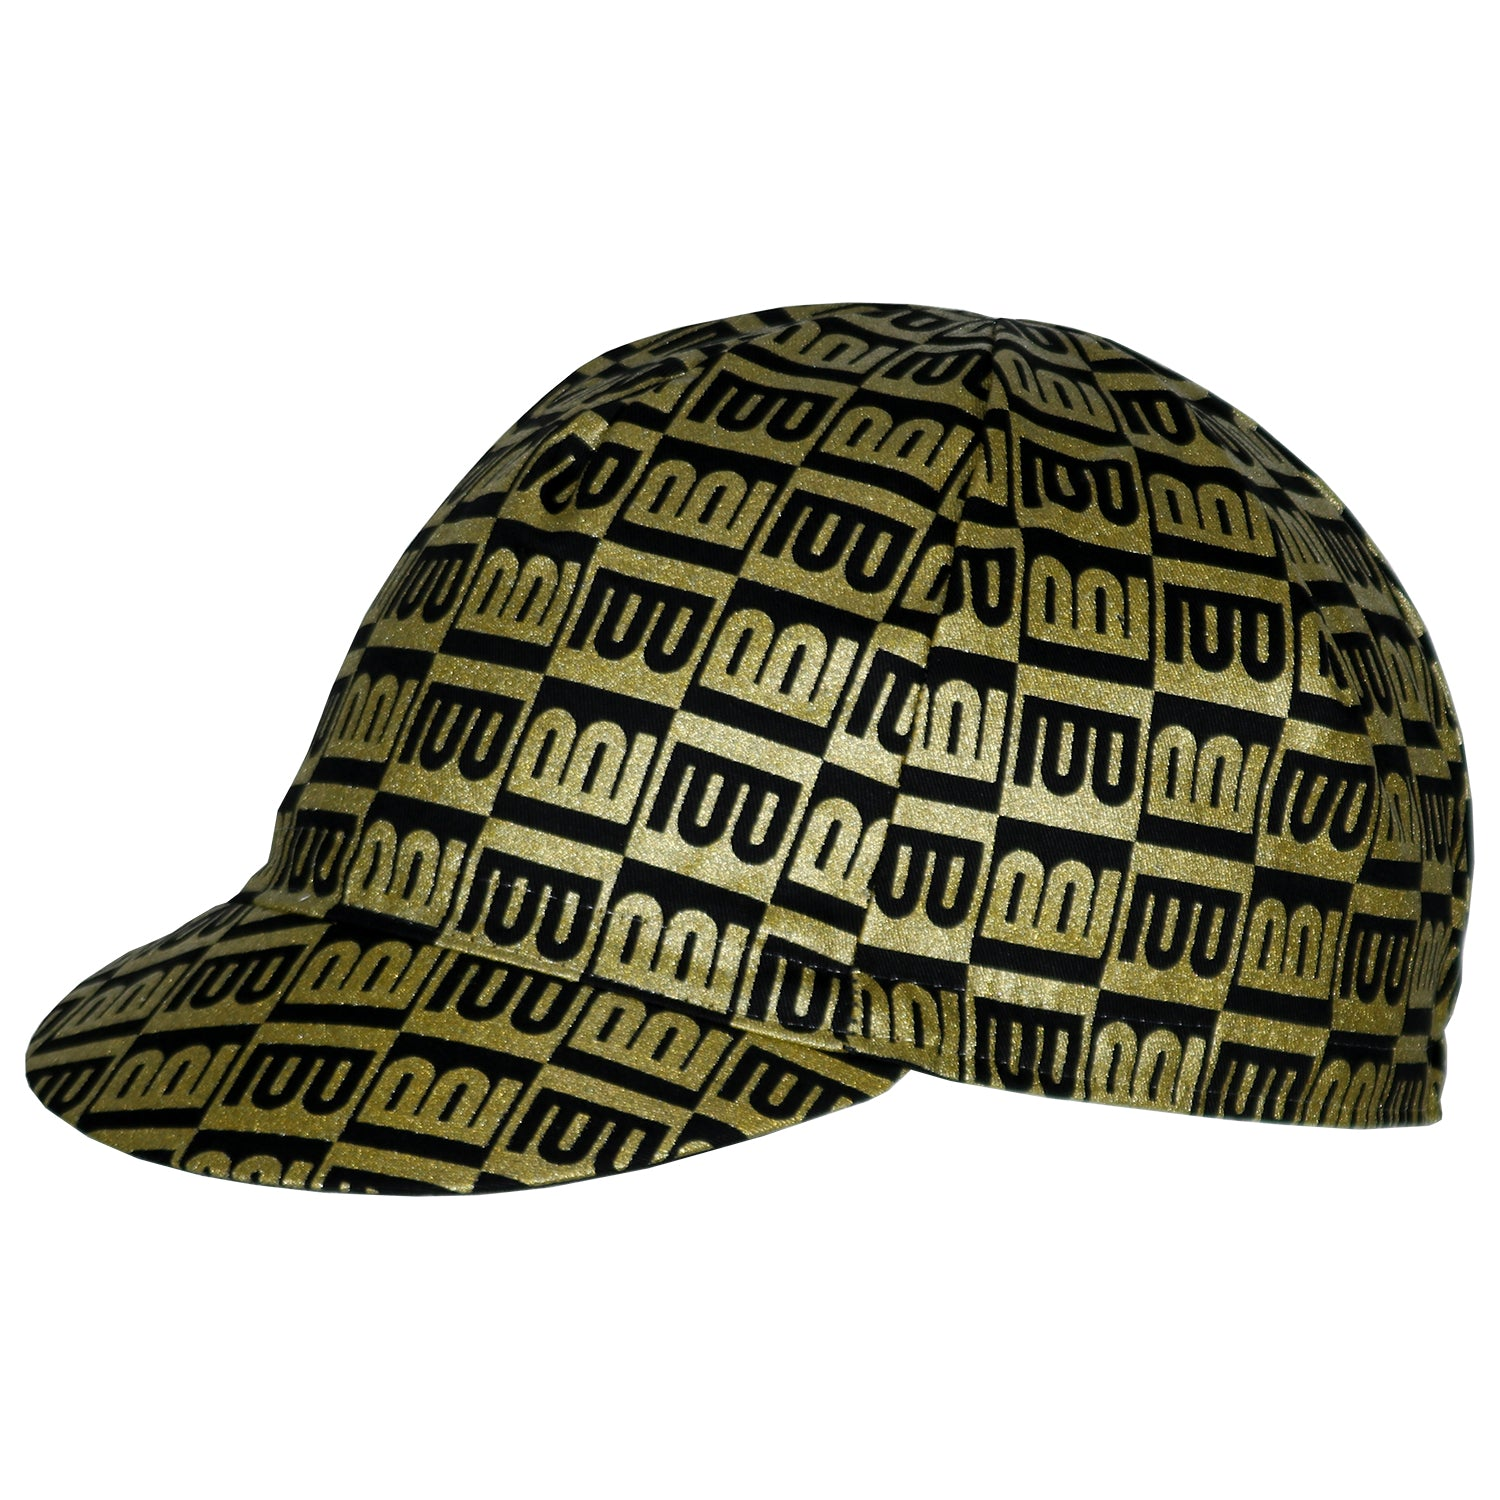 Columbus Cento Gold Cycling Cap